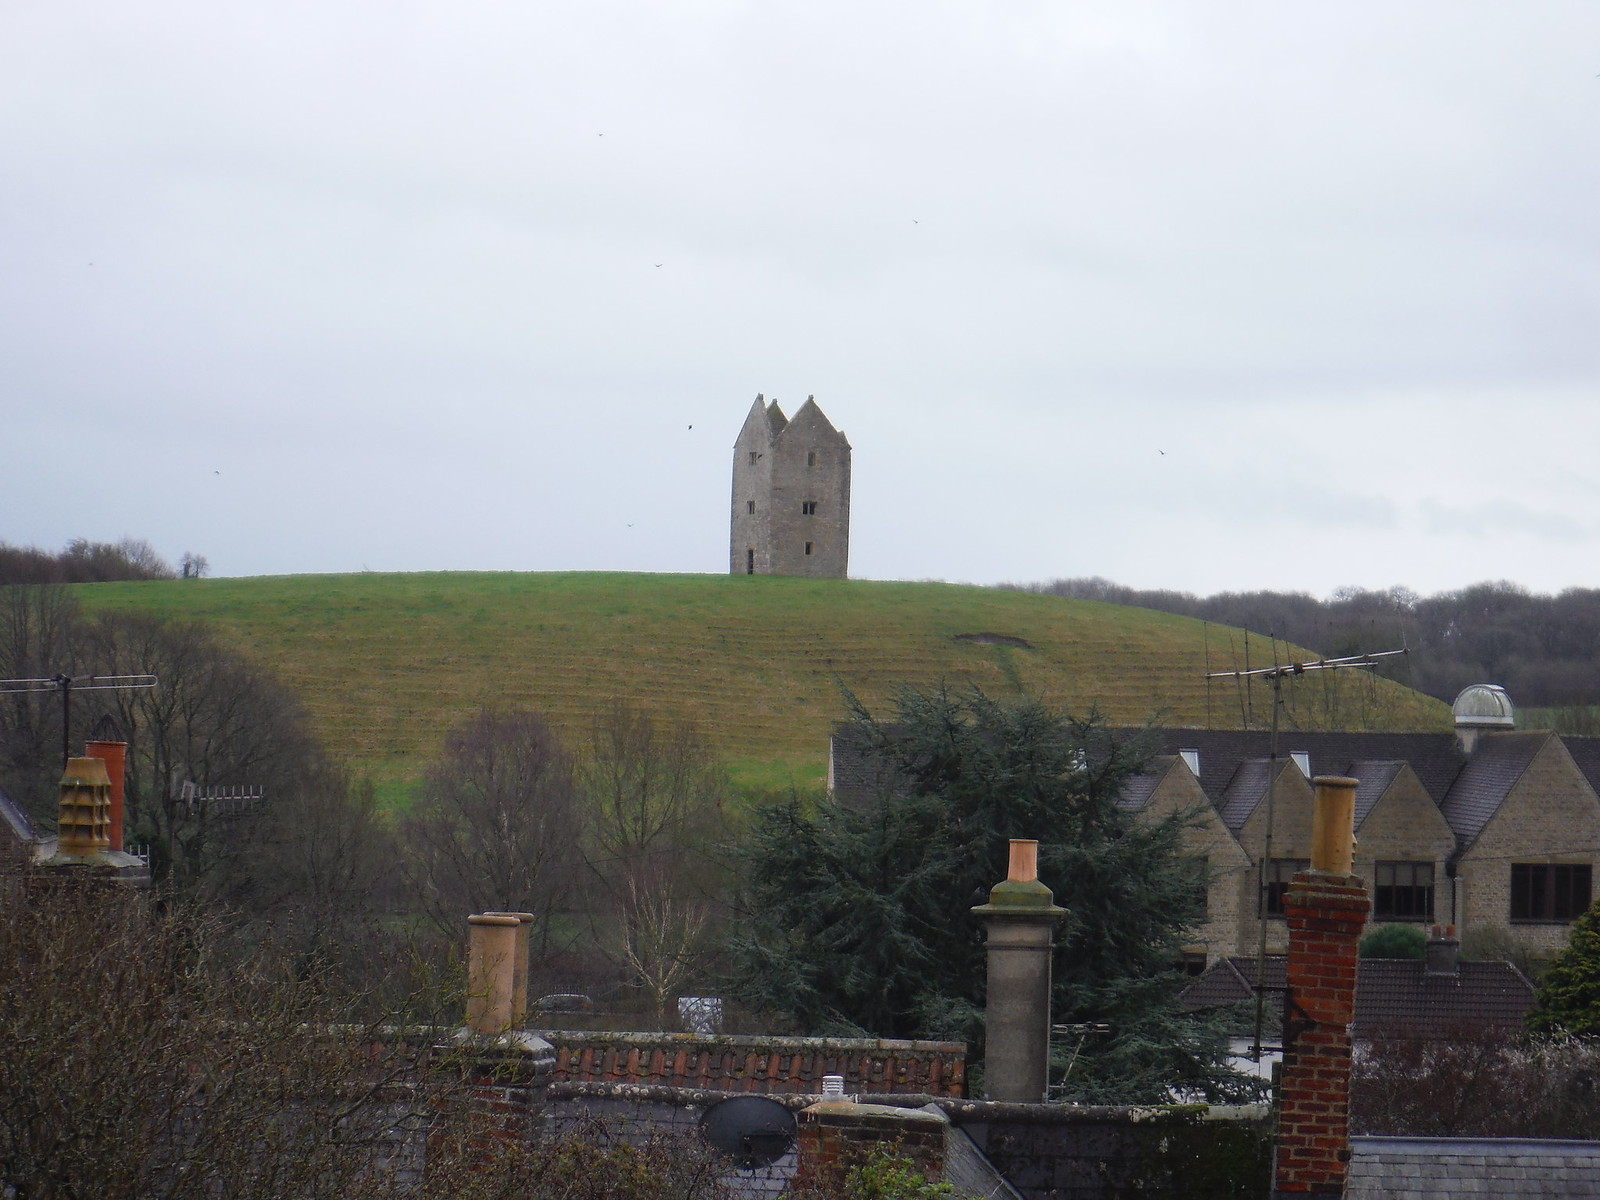 Dovecote on Pillow Mound, Bruton, from St. Catherines Hill SWC Walk 284 Bruton Circular (via Hauser & Wirth Somerset) or from Castle Cary